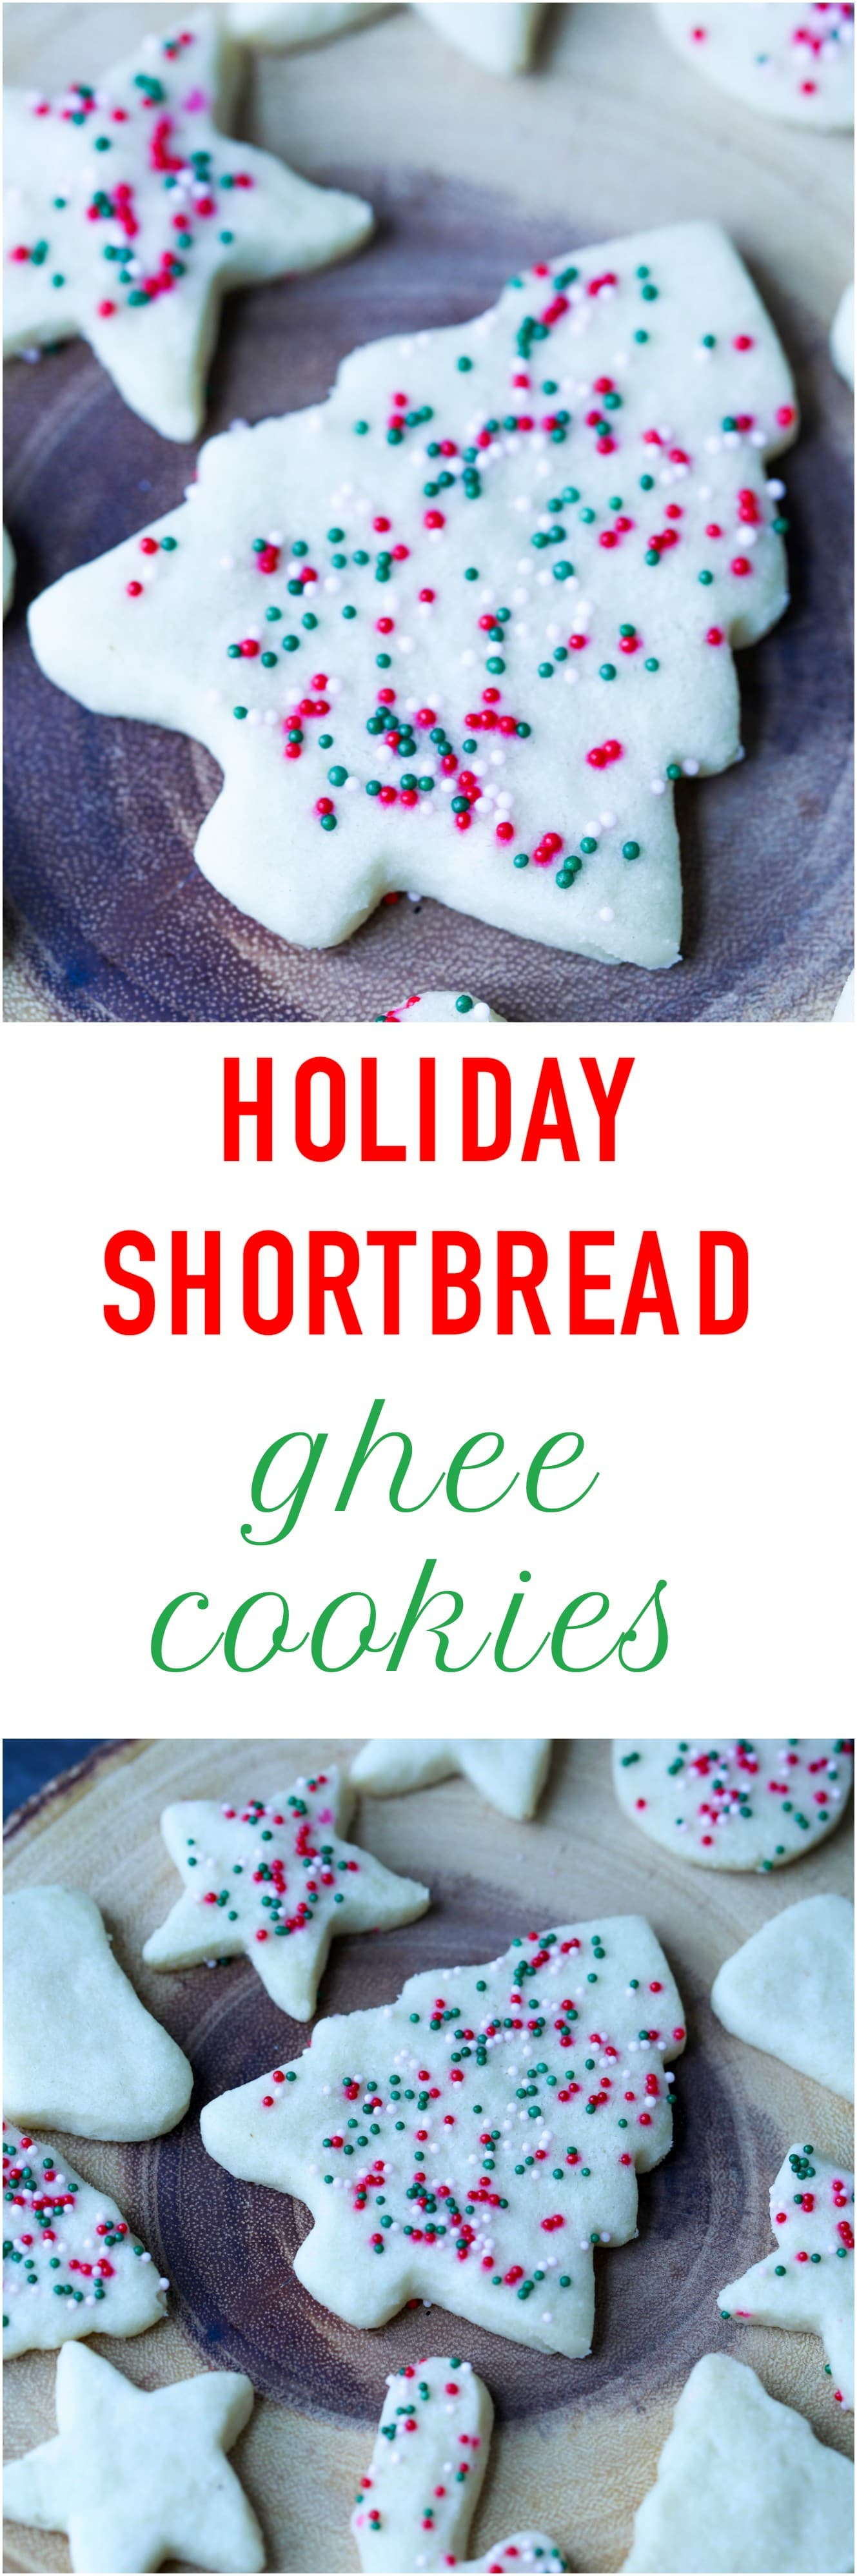 Melt-in your mouth Holiday Shortbread Ghee Cookies made with just few key ingredients!